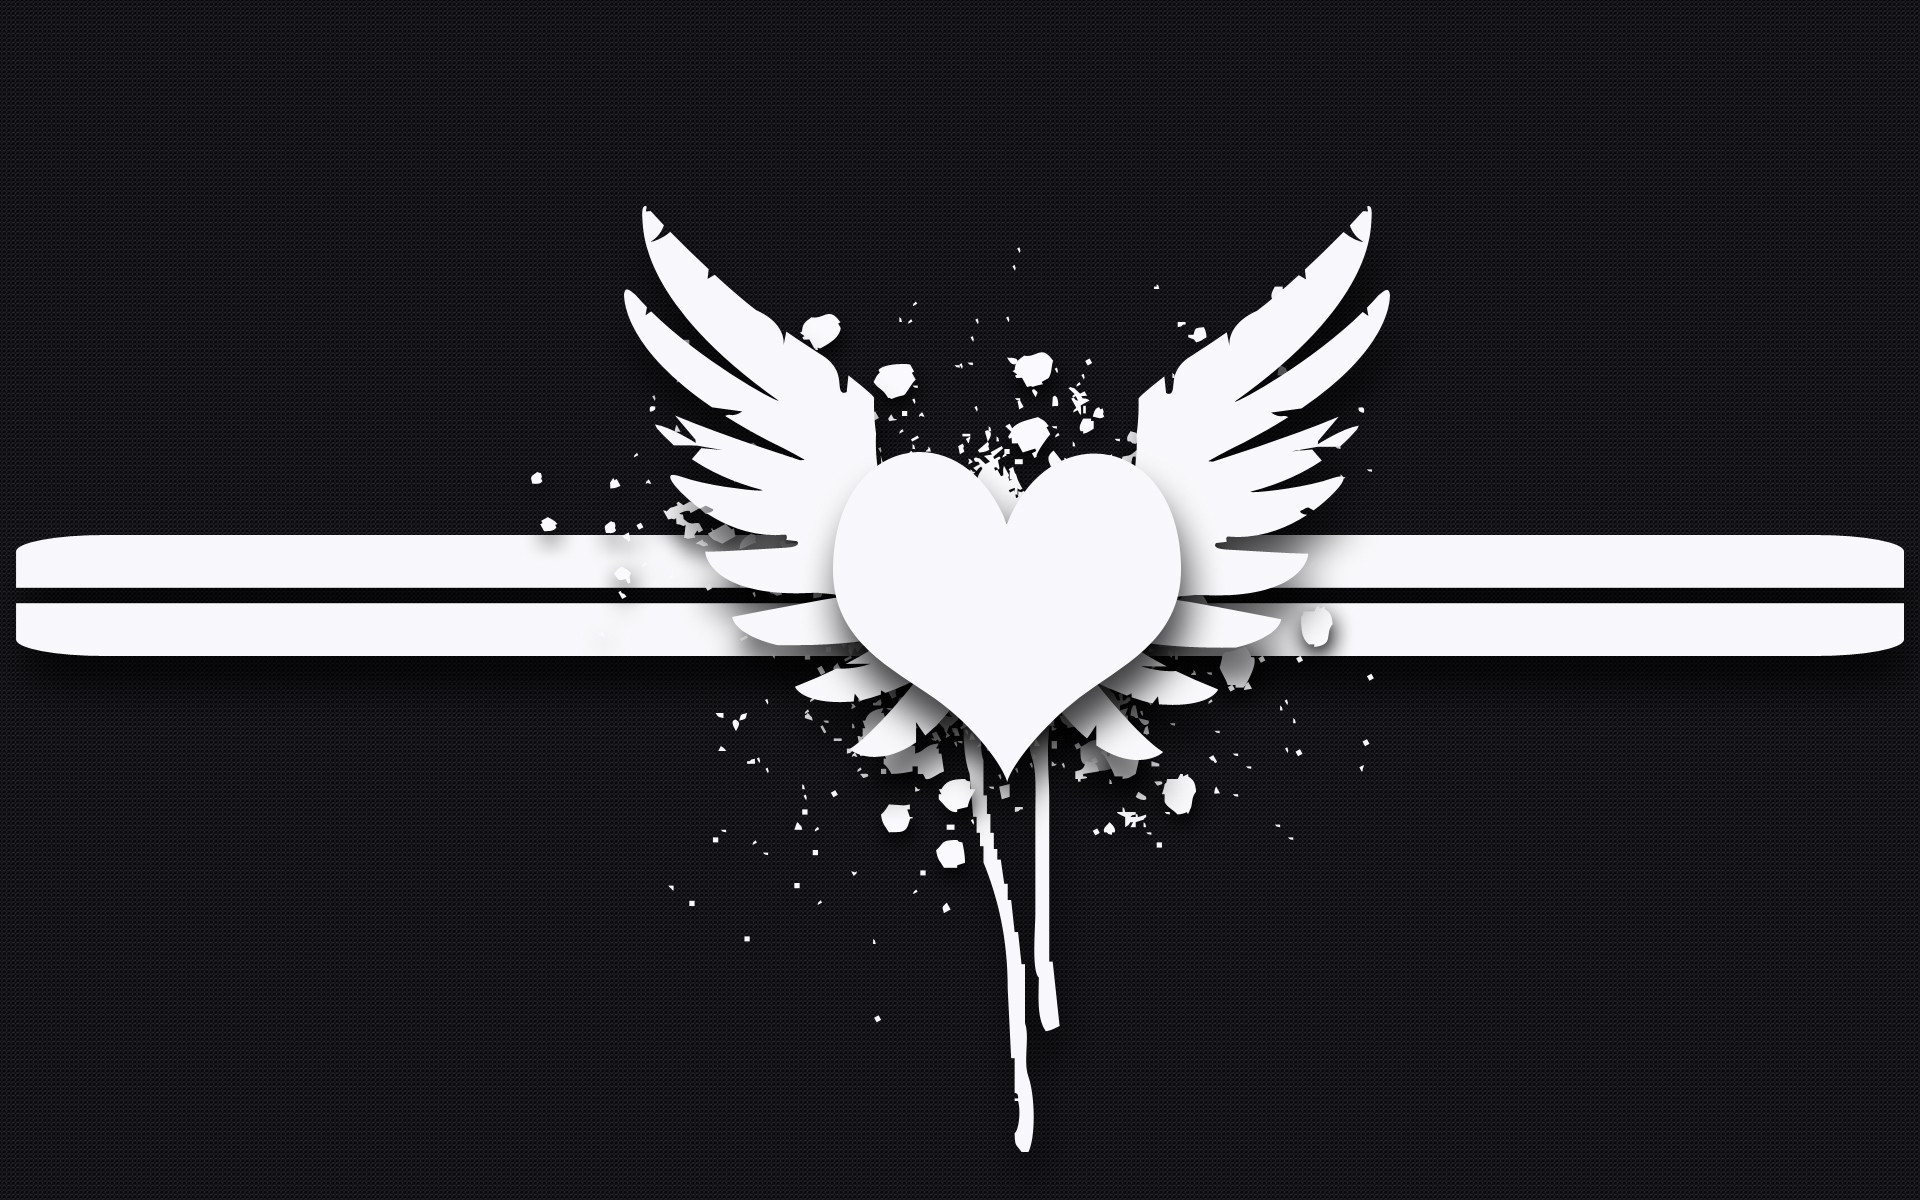 1920x1200 Angel Wings Wallpaper - WallpaperSafari Background Black White ...